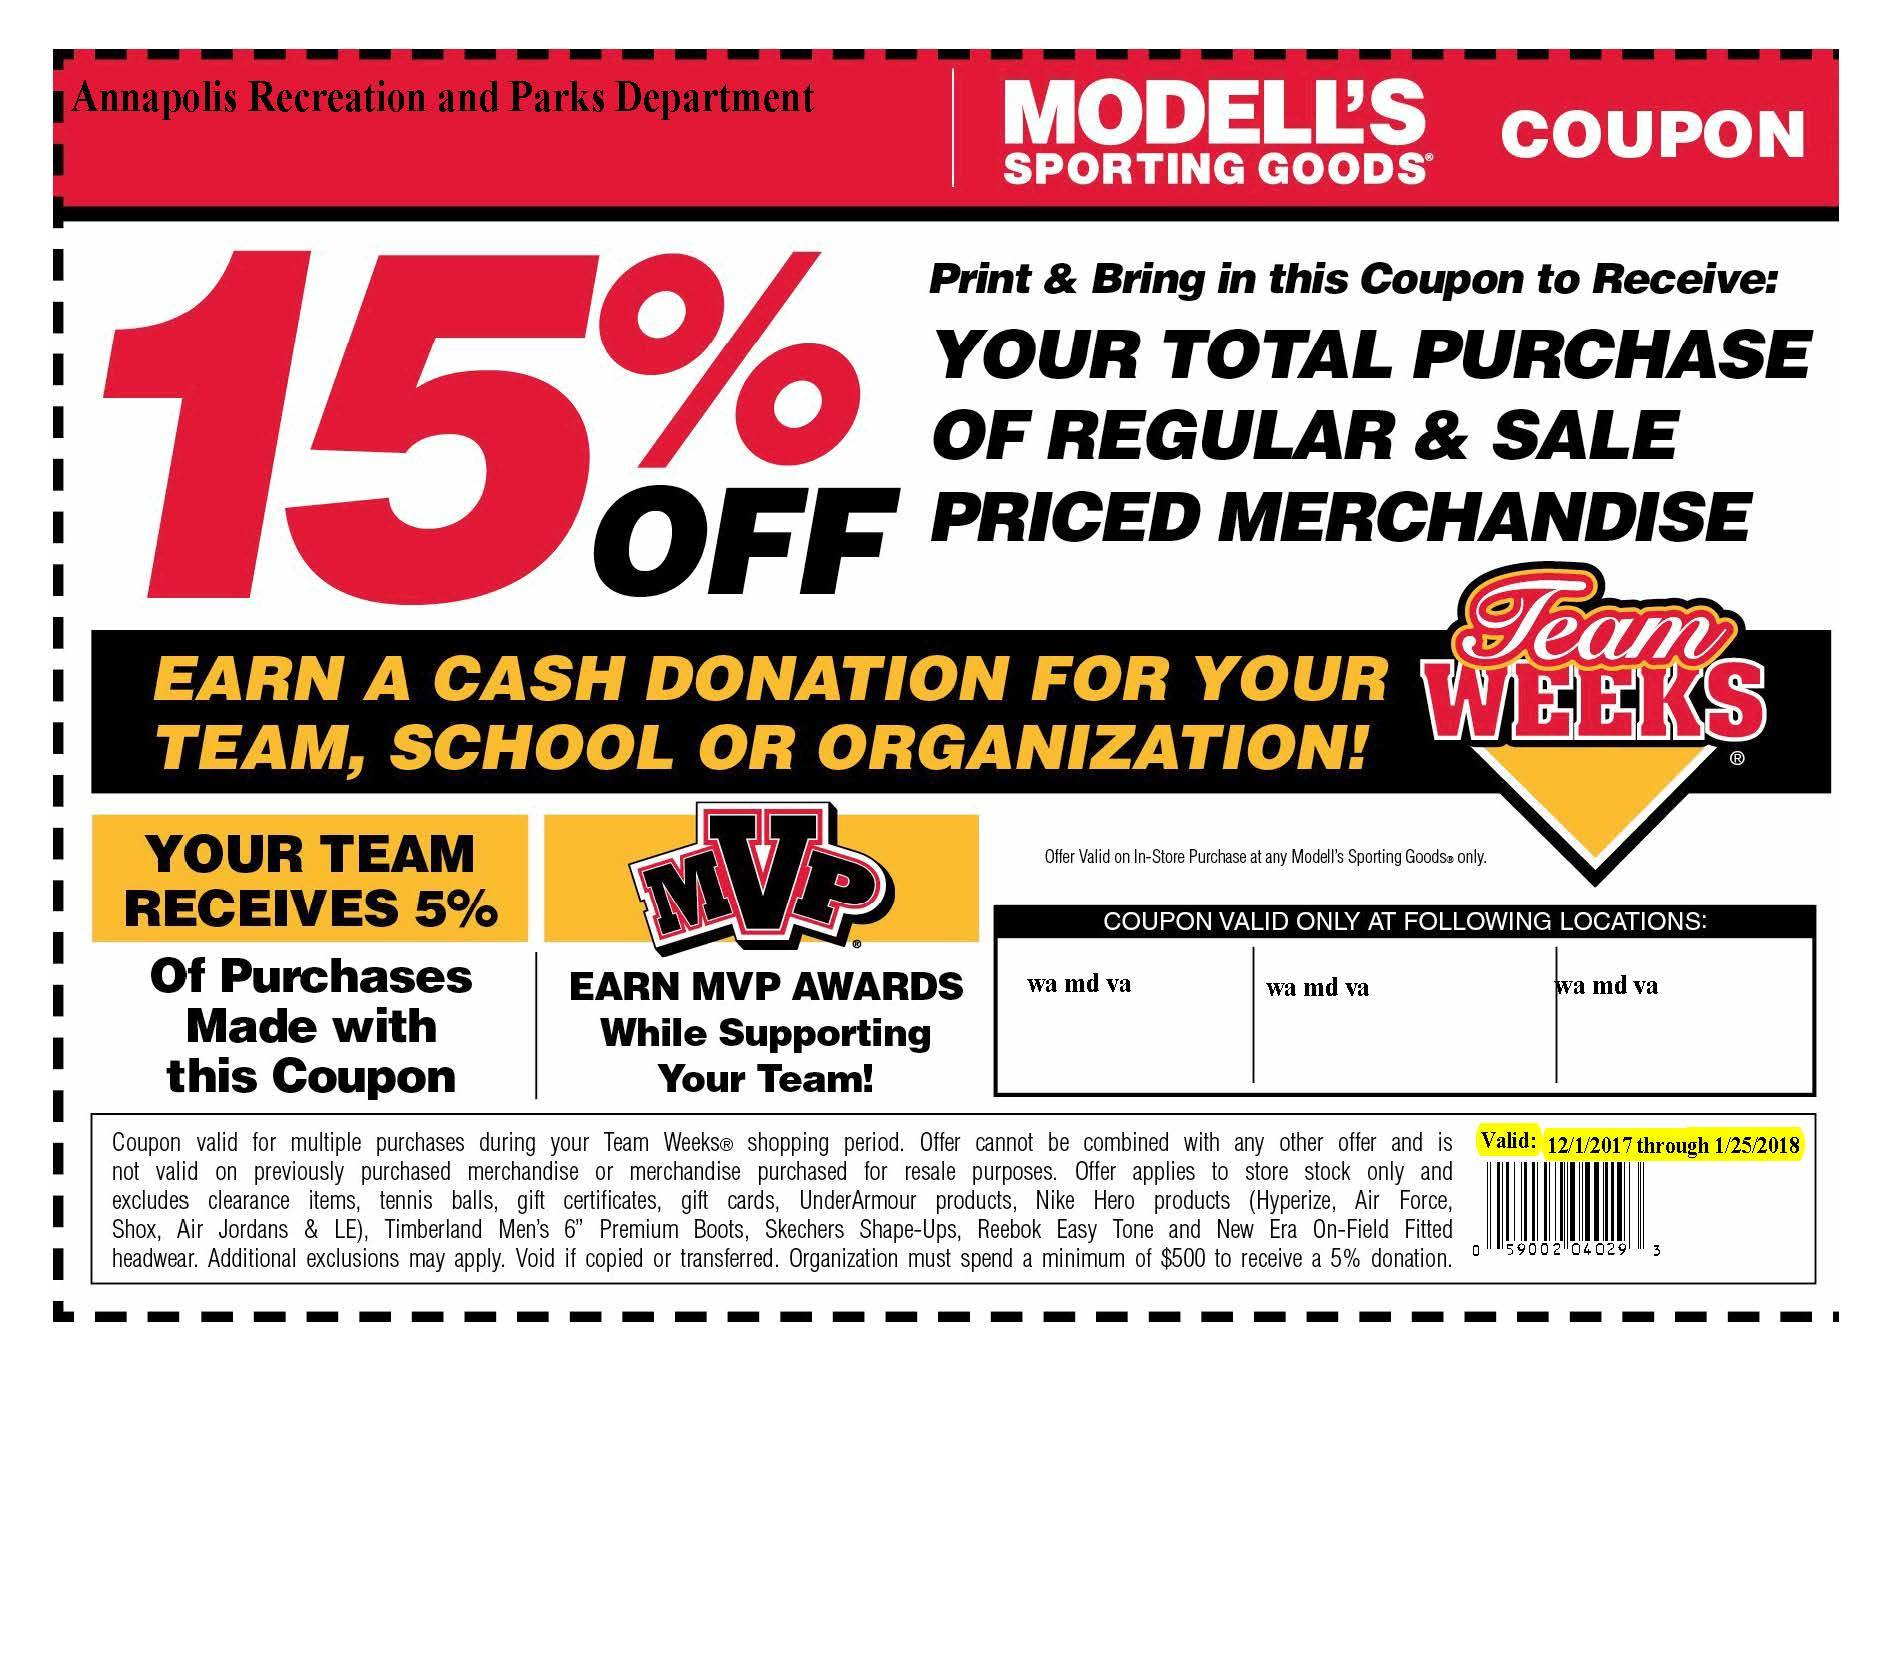 Modells Coupon 120117-012518